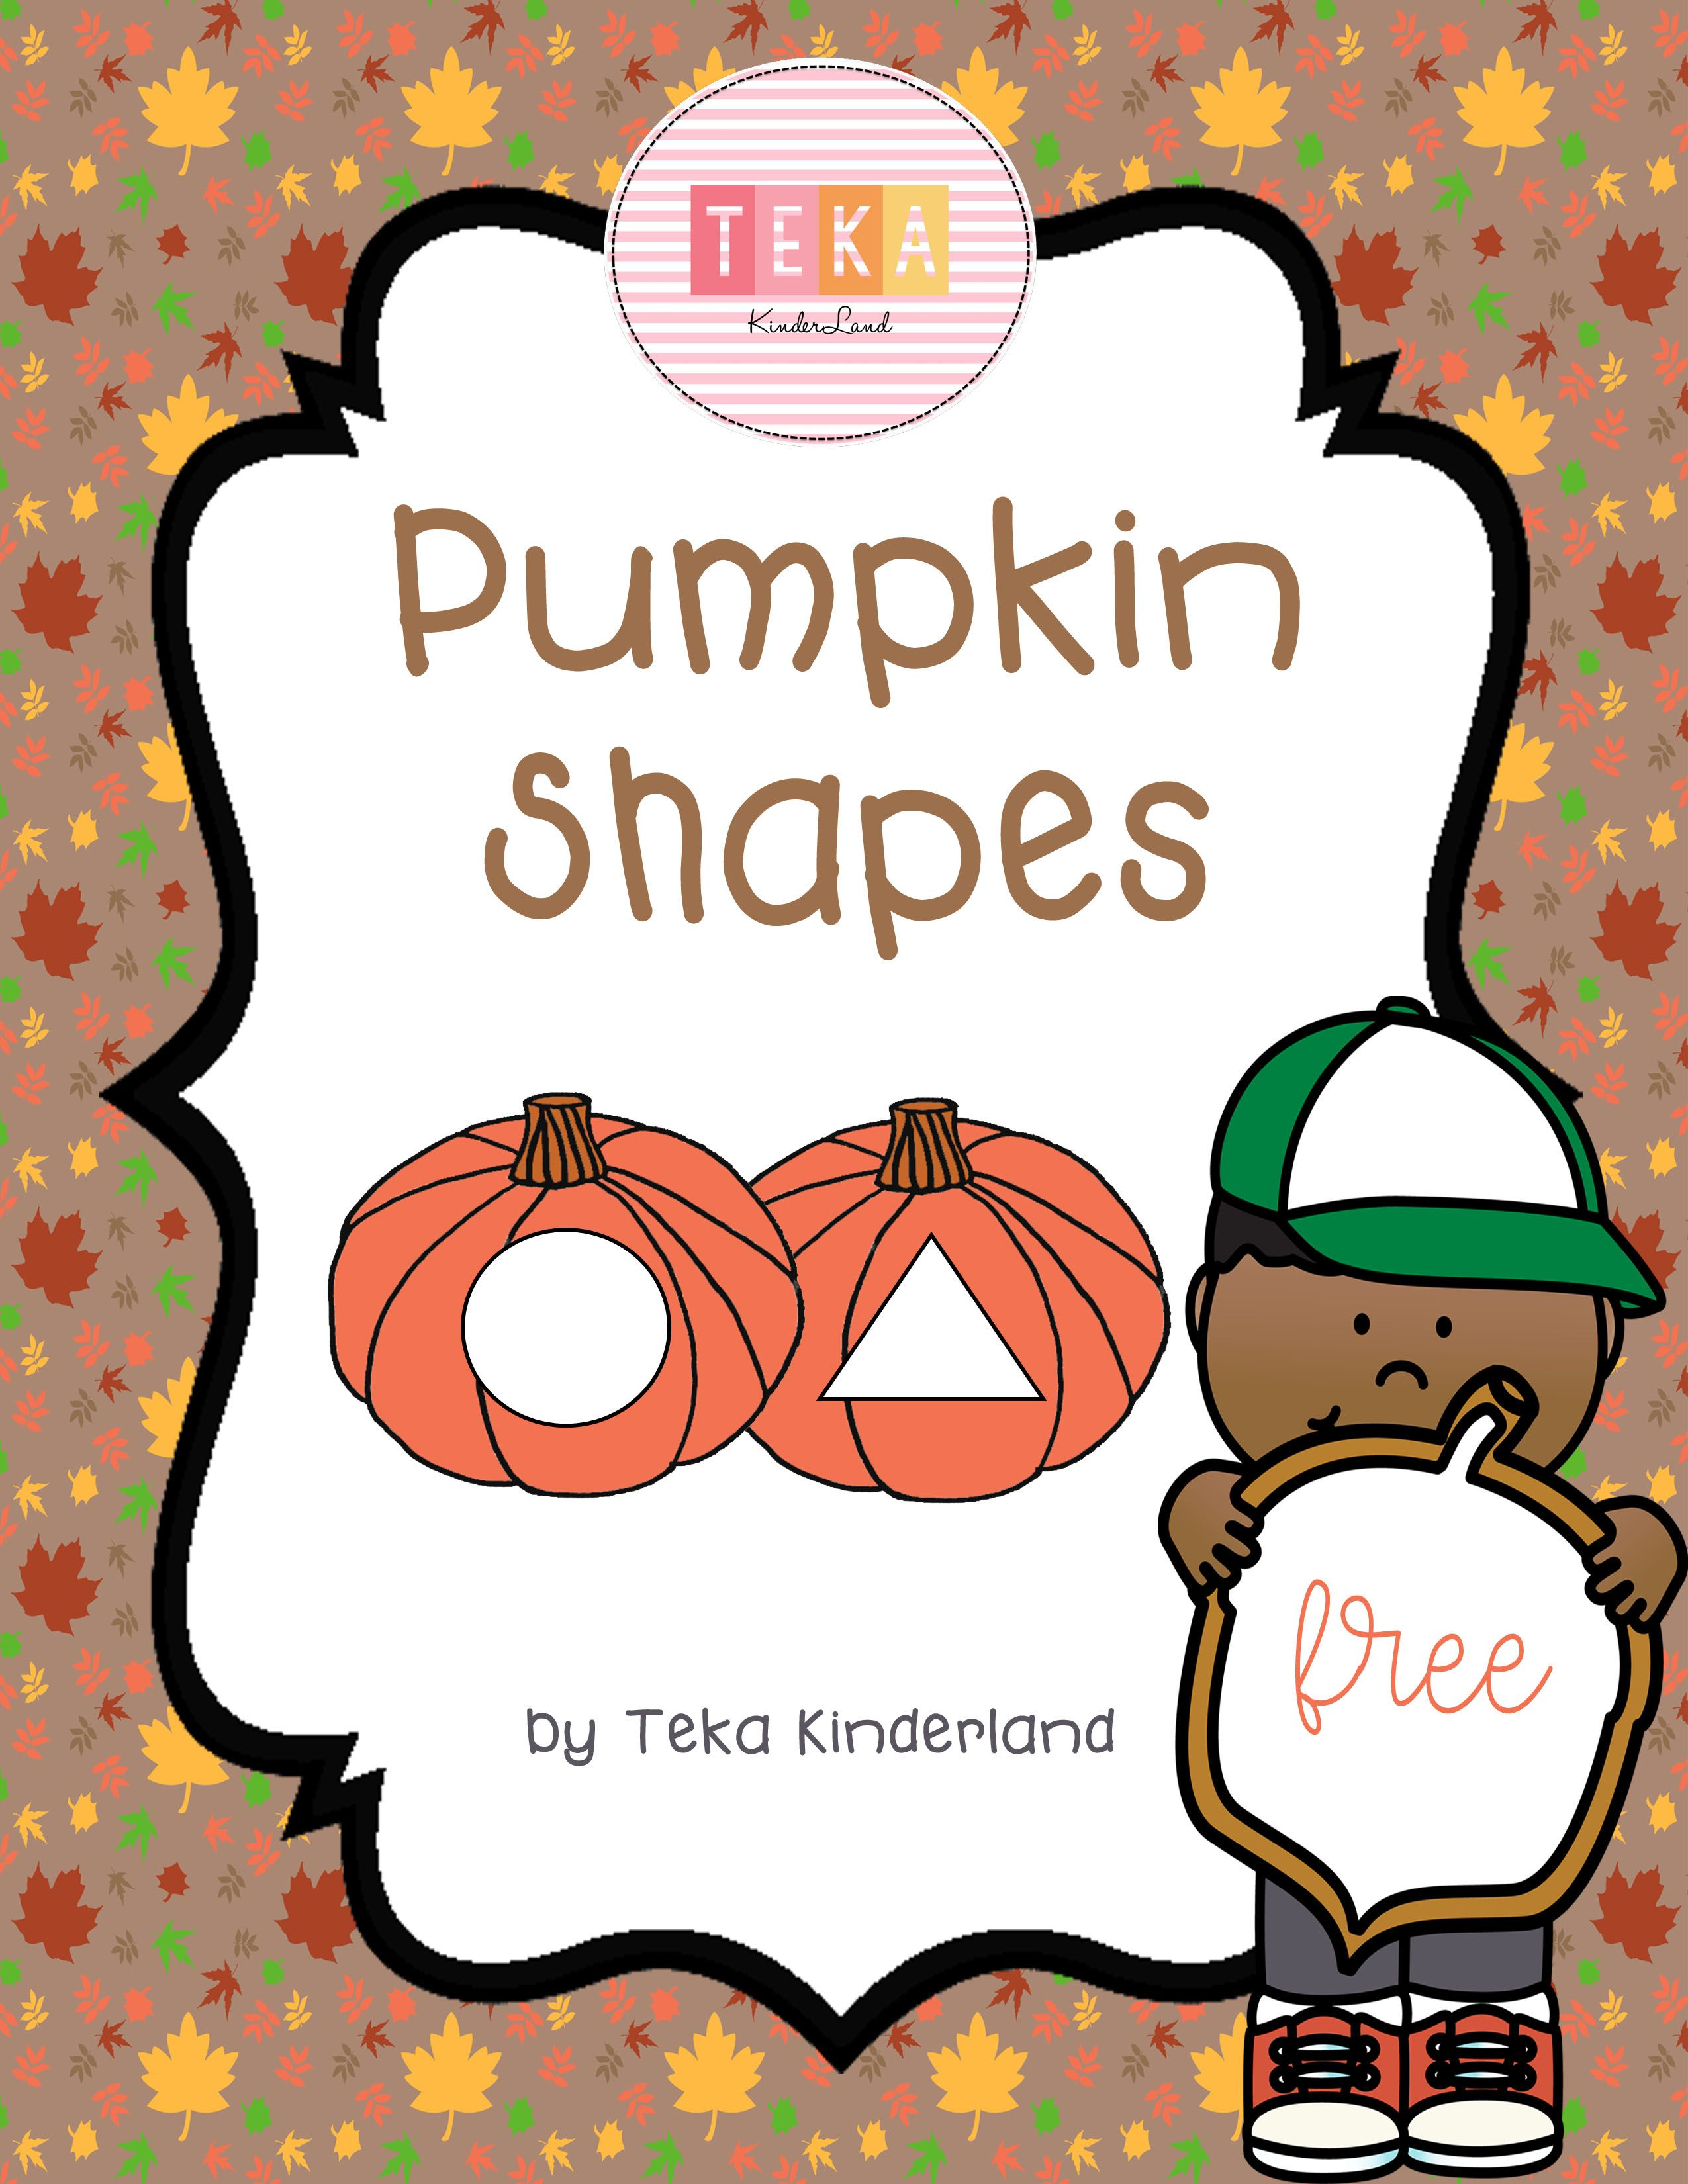 Pumpkin Shapes This Set Includes Six 2d Shapes Every Image